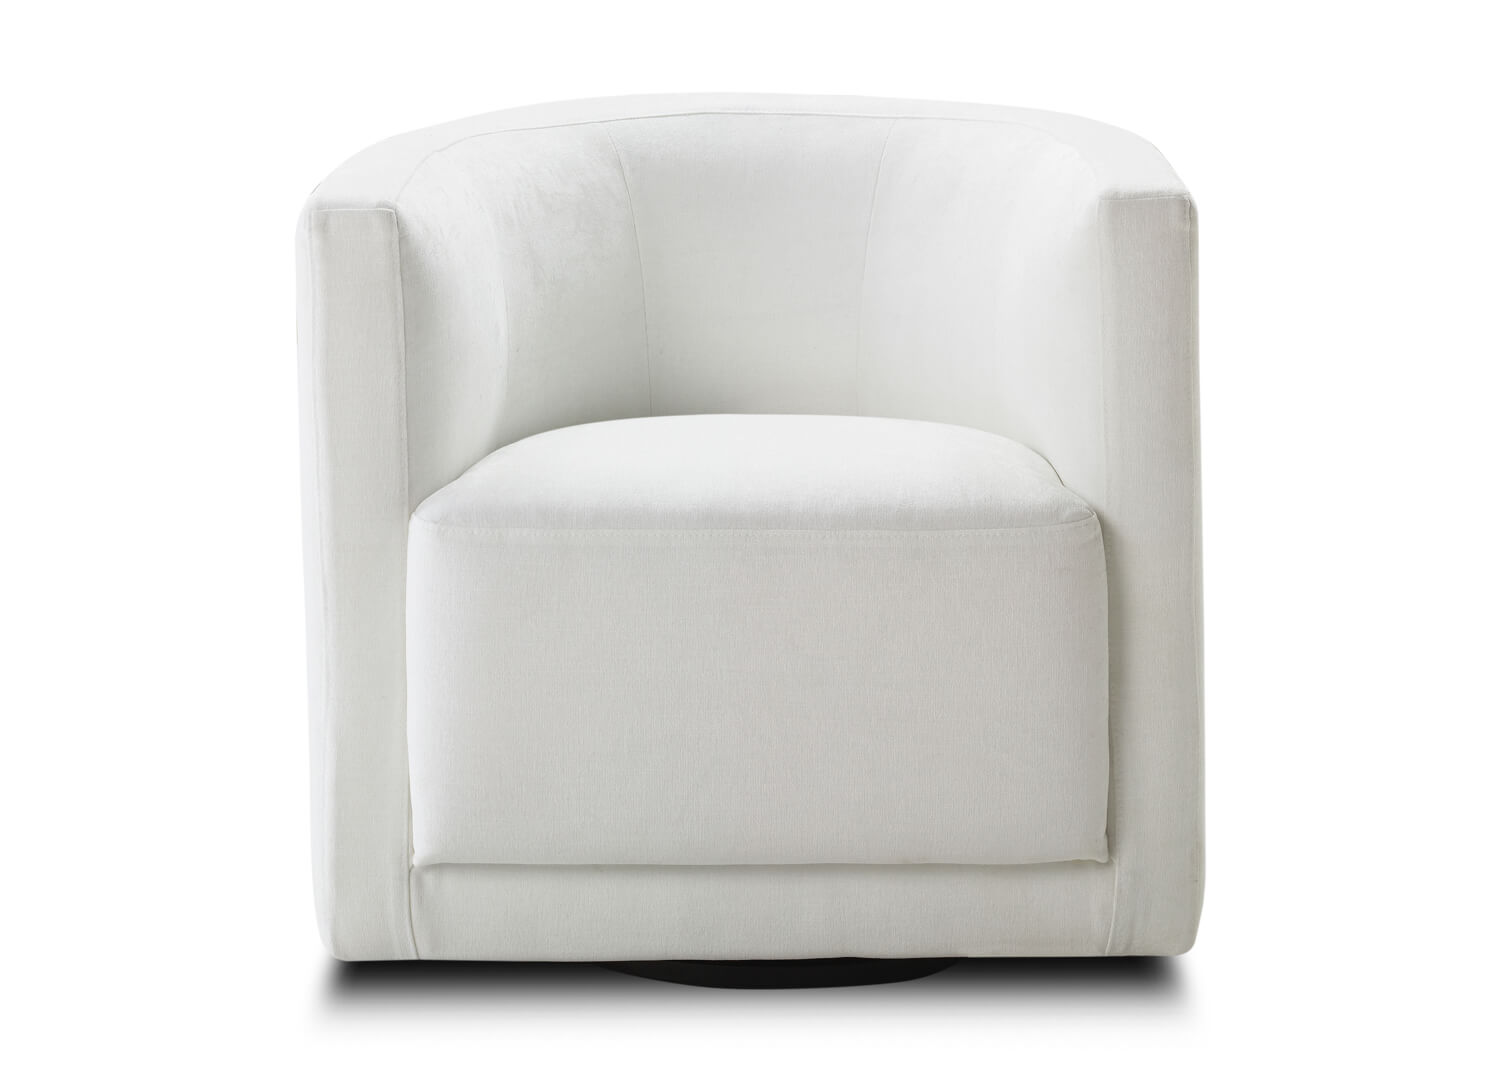 Fantastic Oliver Tub Chair By King Living Est Living Design Directory Creativecarmelina Interior Chair Design Creativecarmelinacom